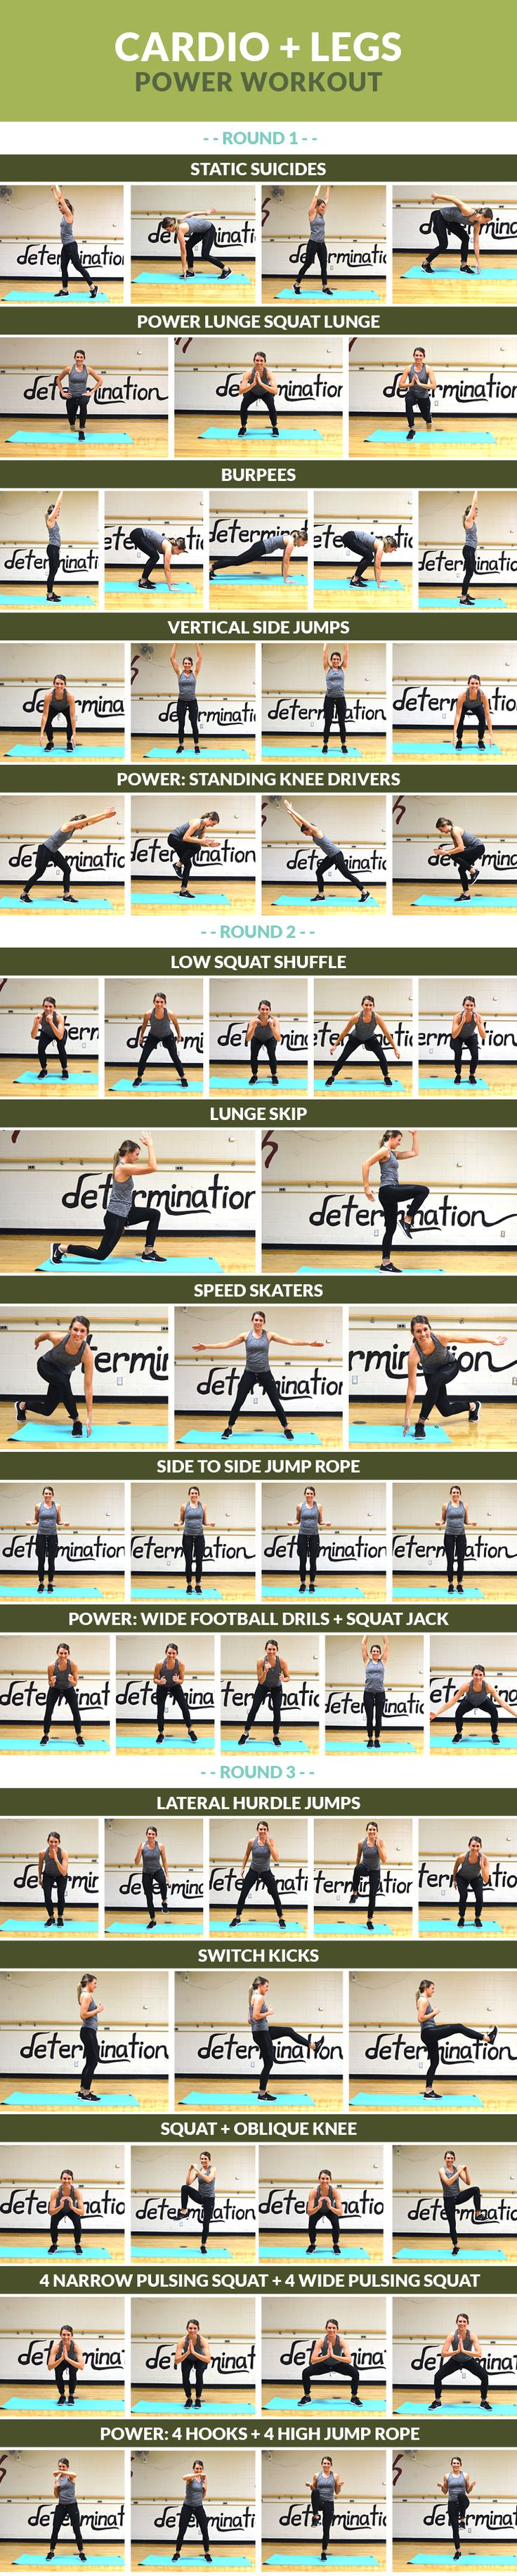 Cardio + Legs Power Workout - Get your sweat on while shaping your lower body!